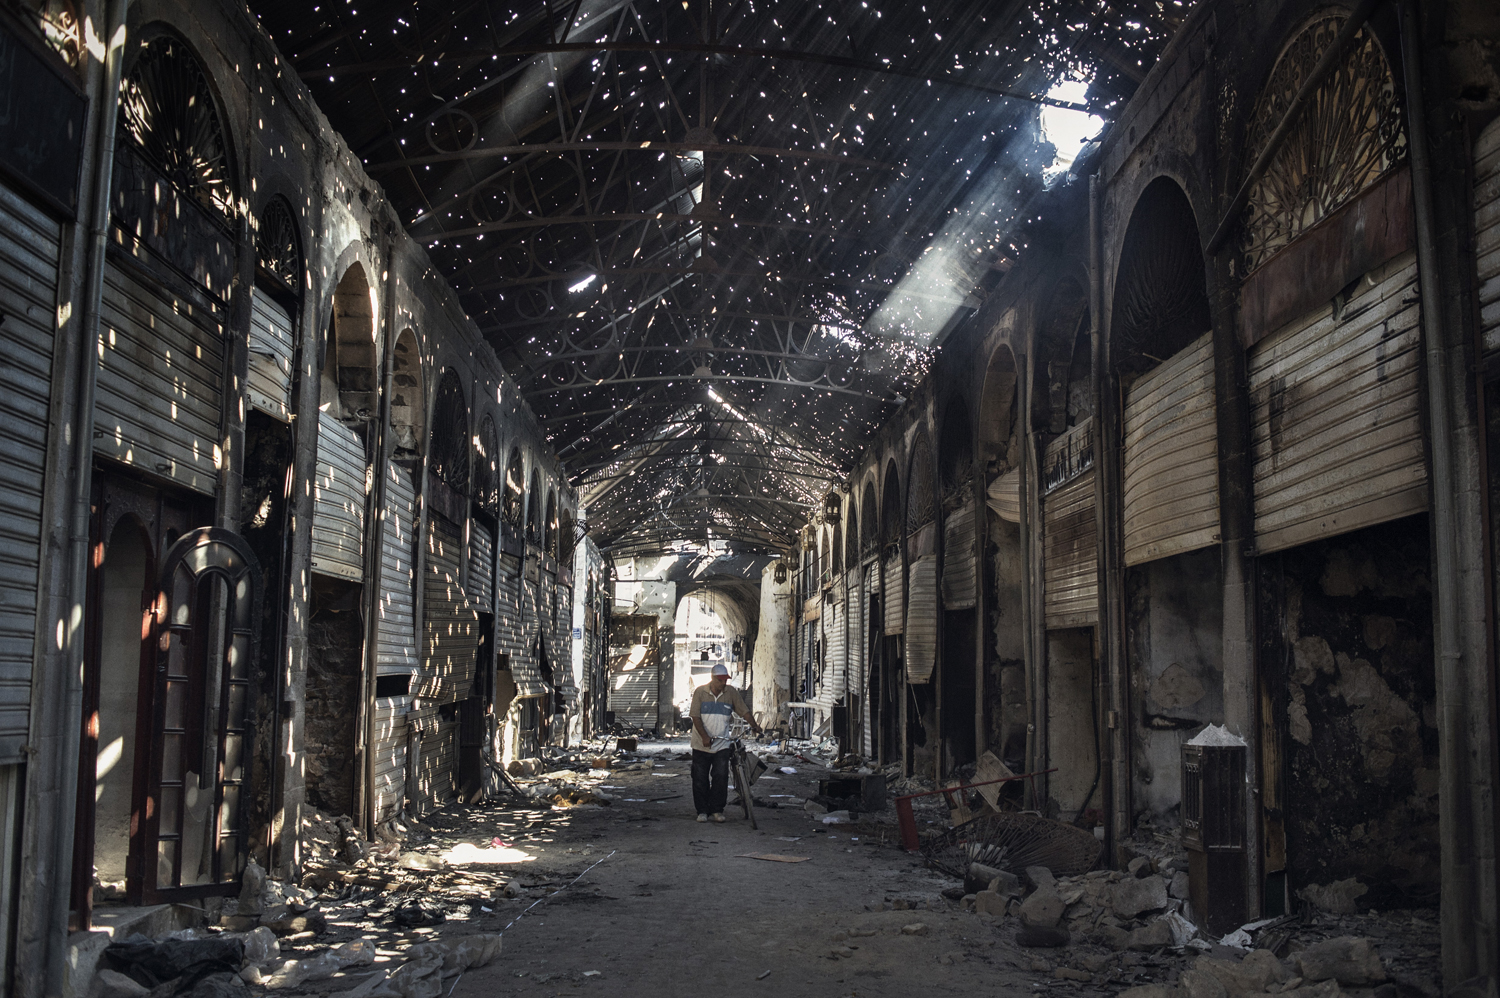 The old covered market in Homs sits destroyed. May 14, 2014.